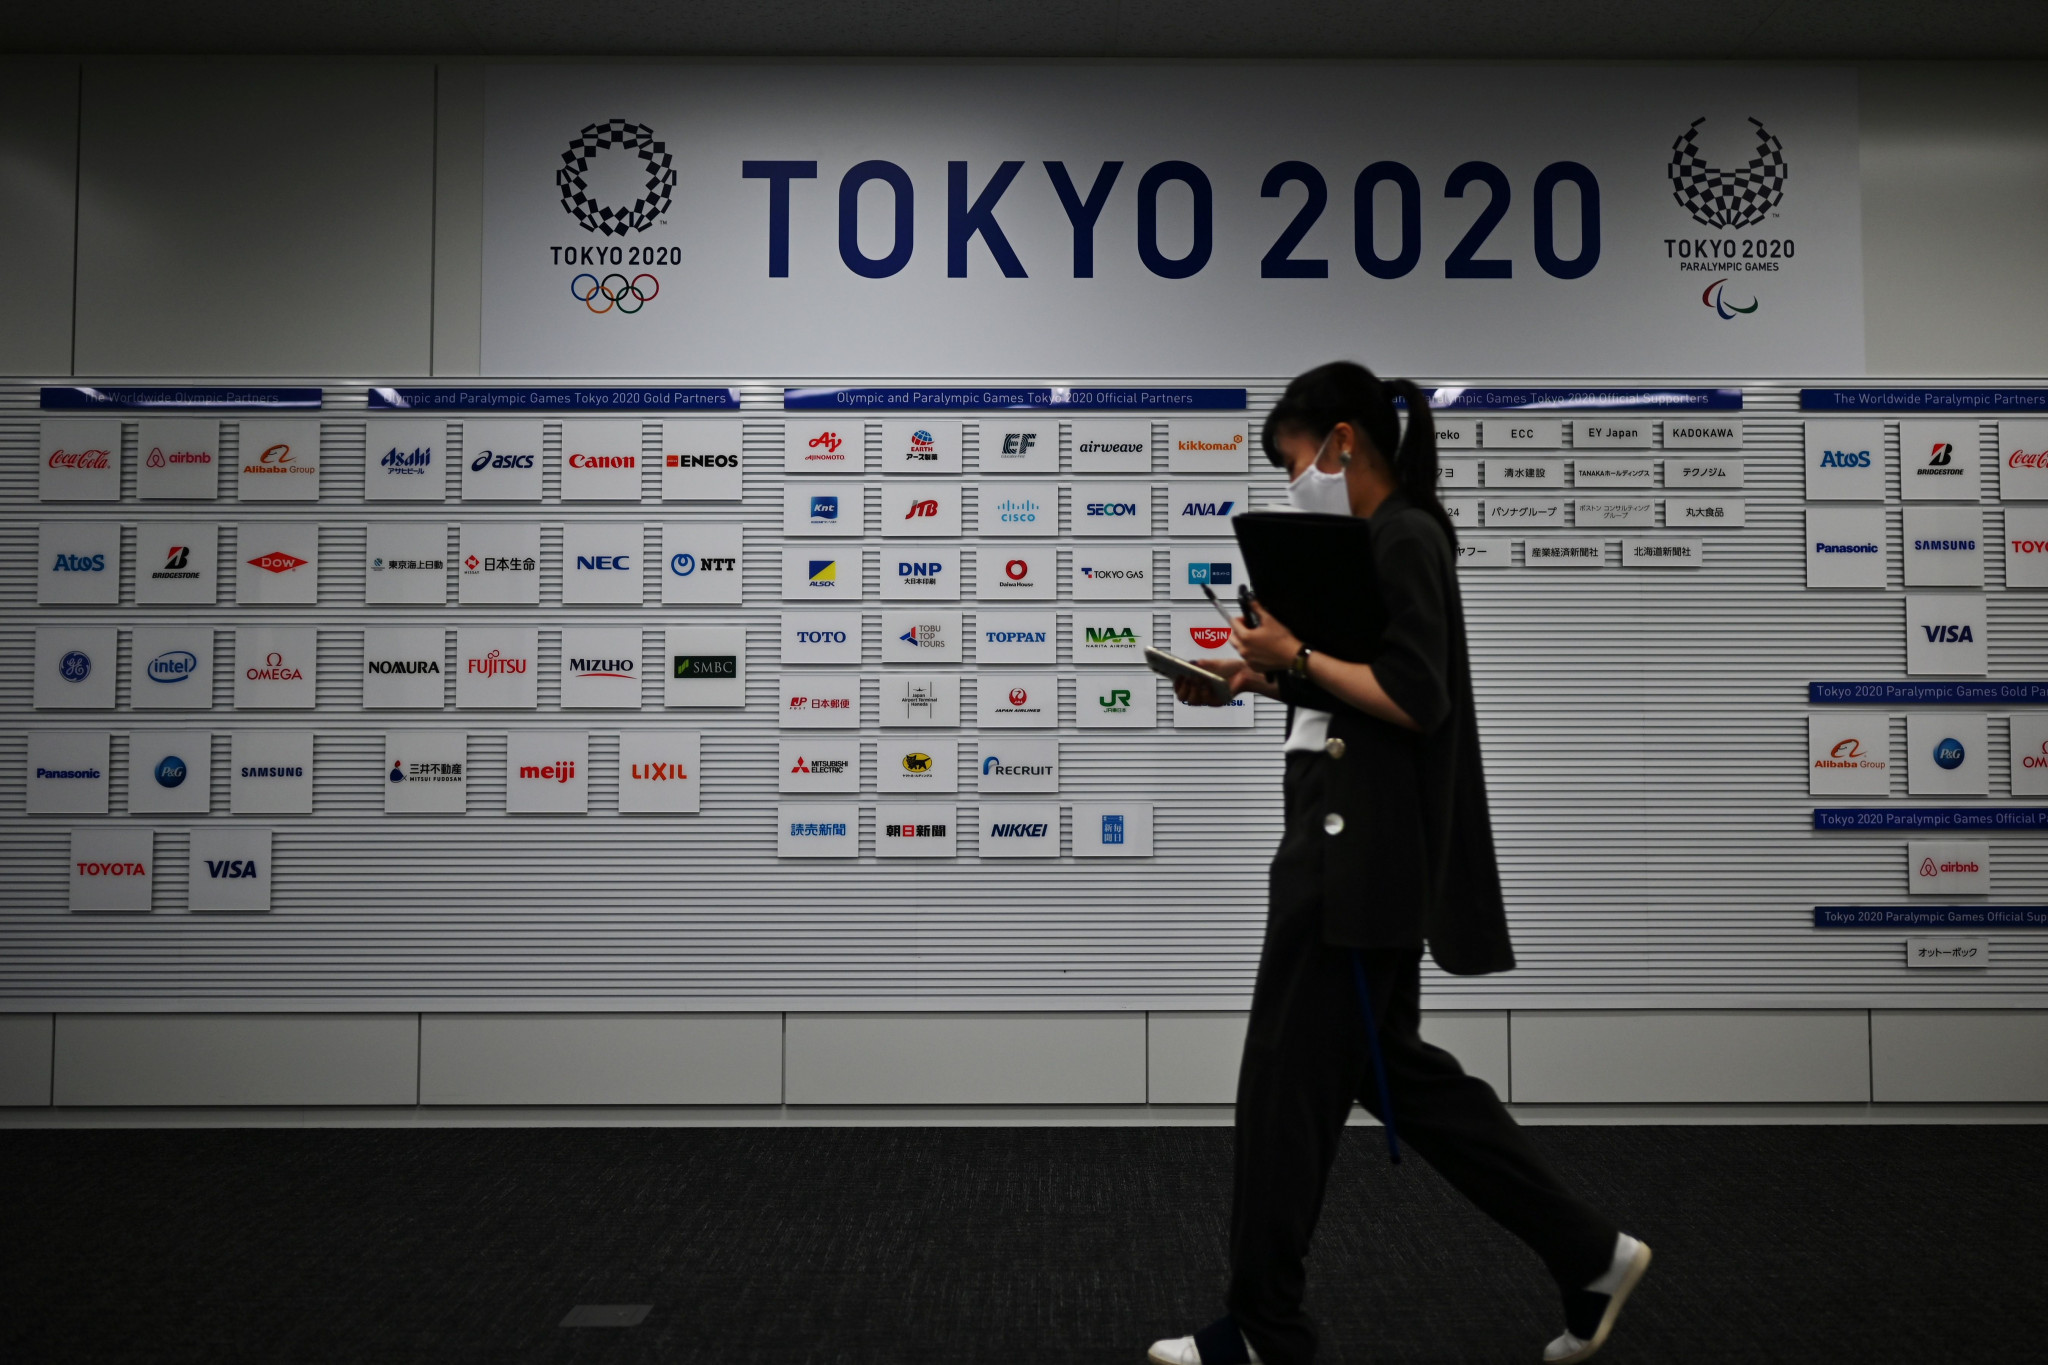 Despite Thomas Bach's positive message about Tokyo 2020, there are still concerns the coronavirus pandemic may affect the upcoming Olympic Games ©Getty Images